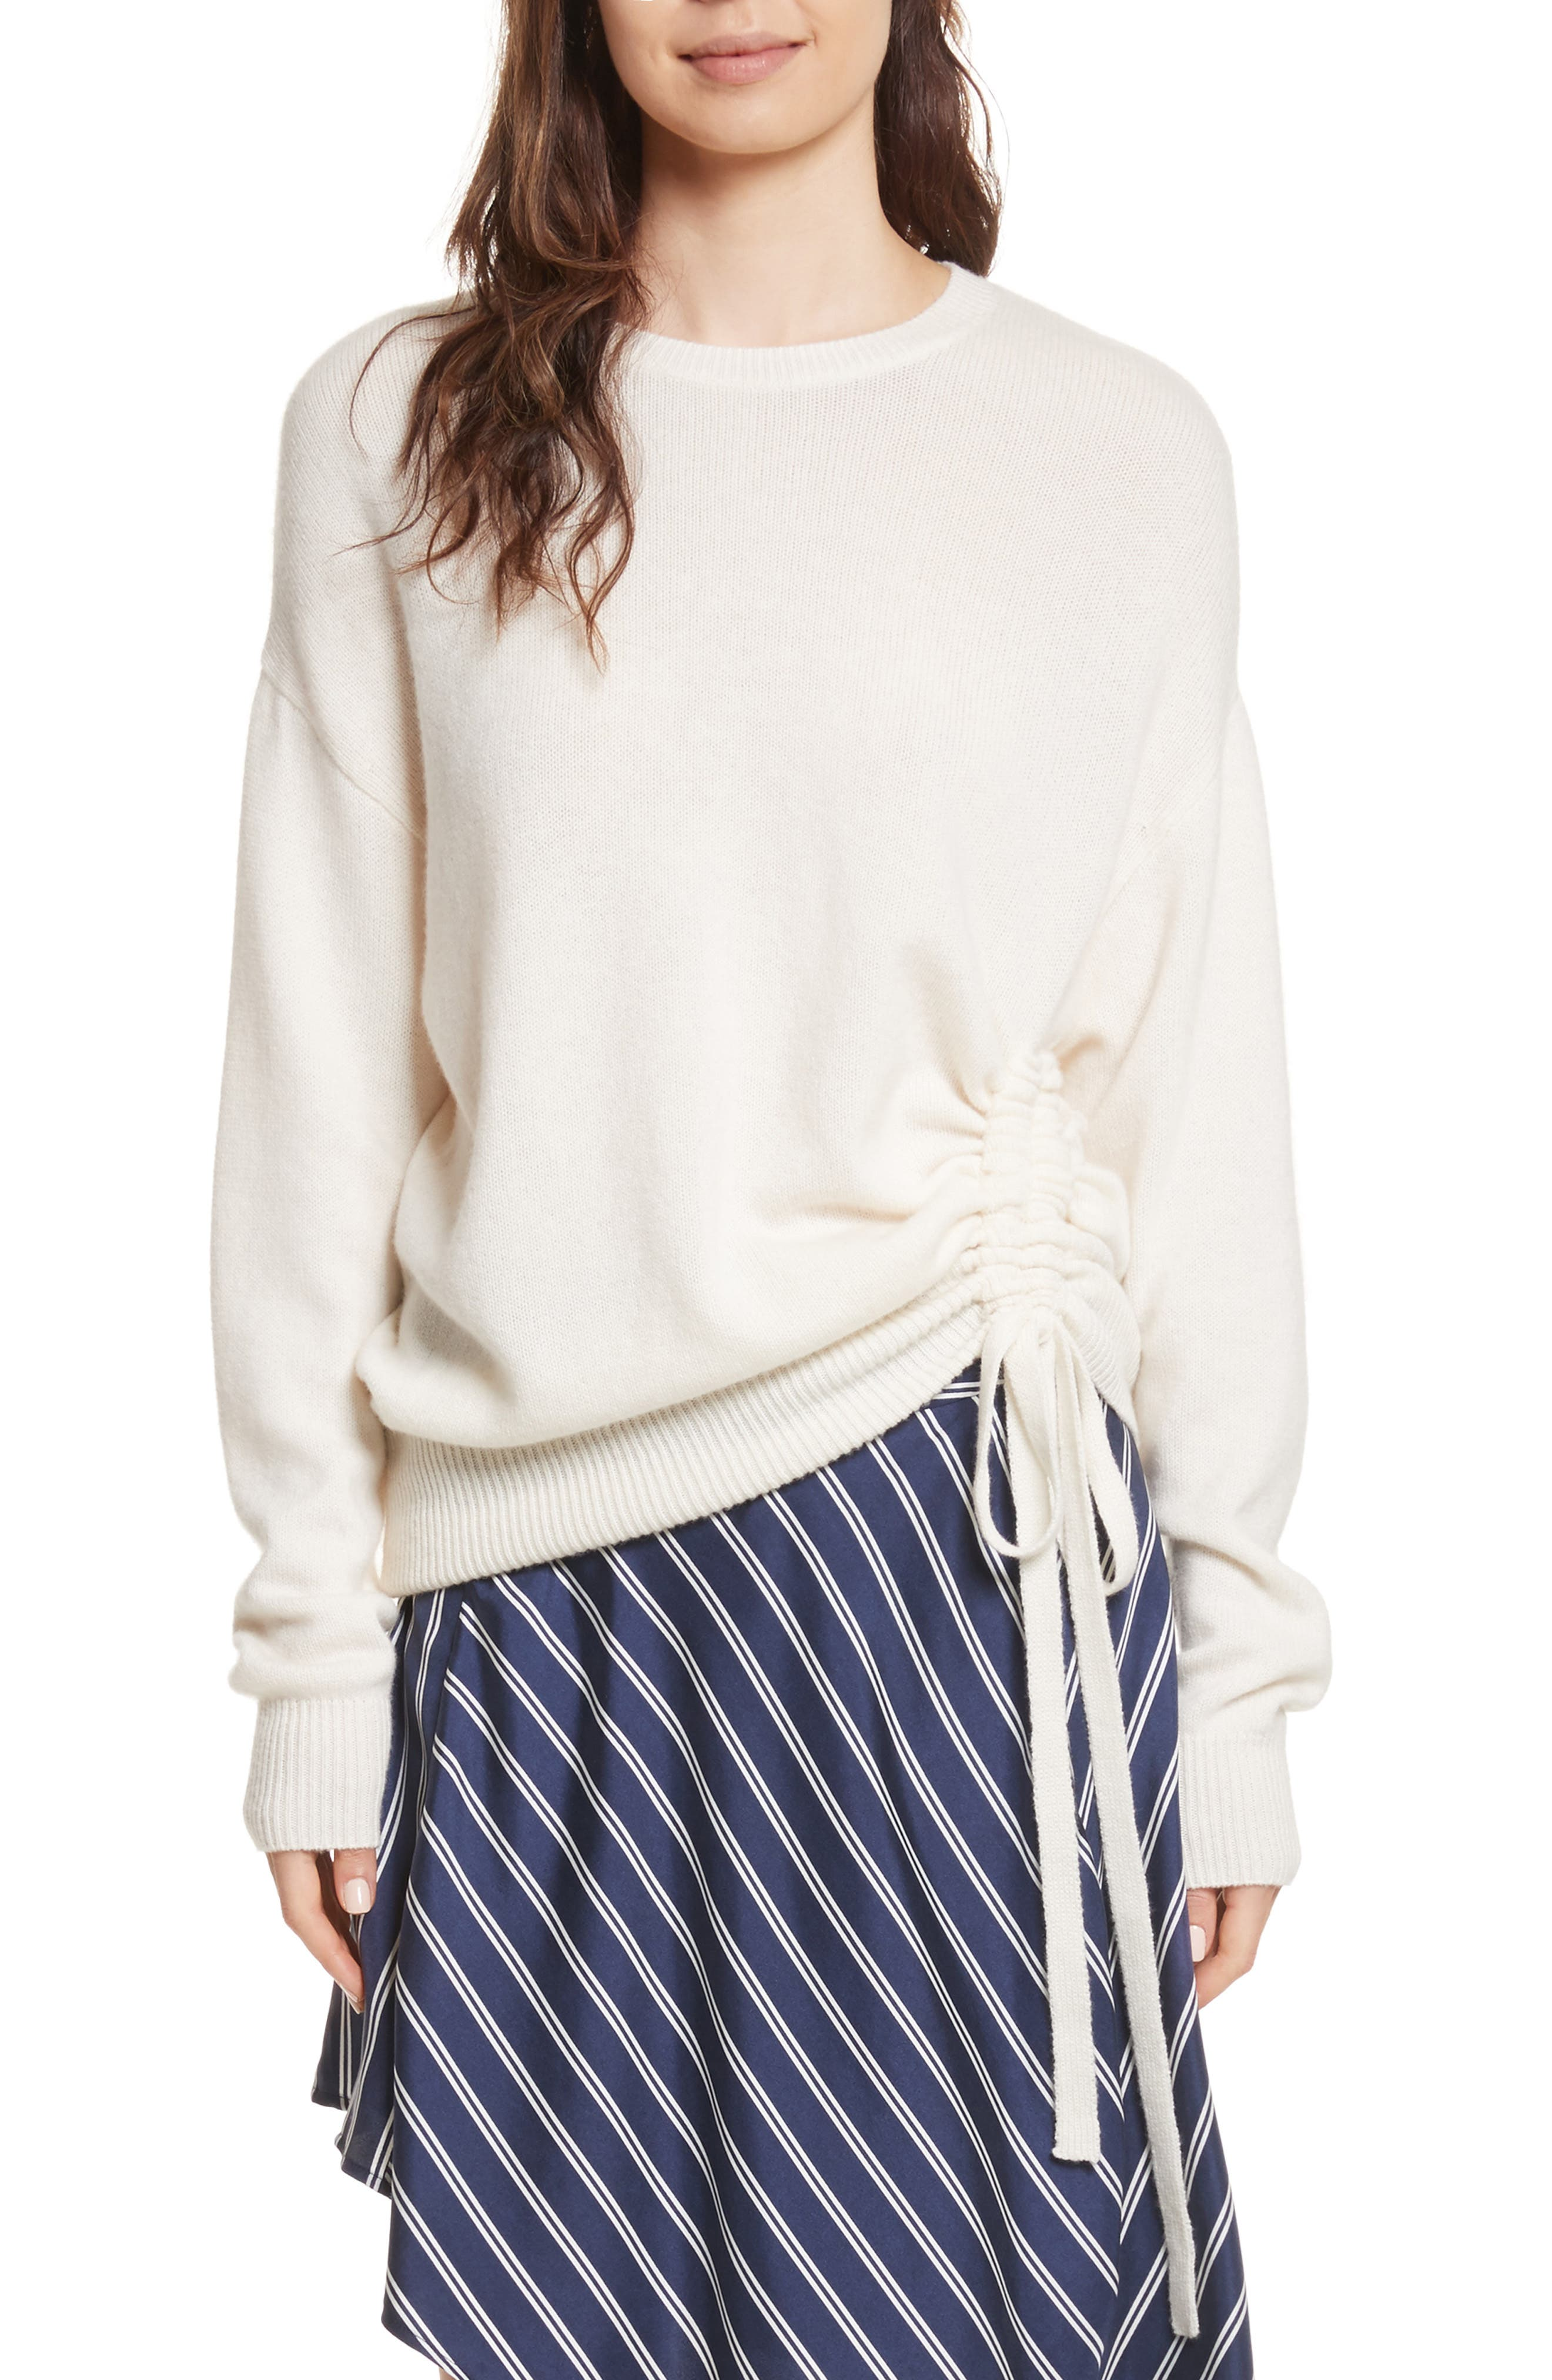 Iphis Wool & Cashmere Sweater,                             Main thumbnail 1, color,                             Porcelain